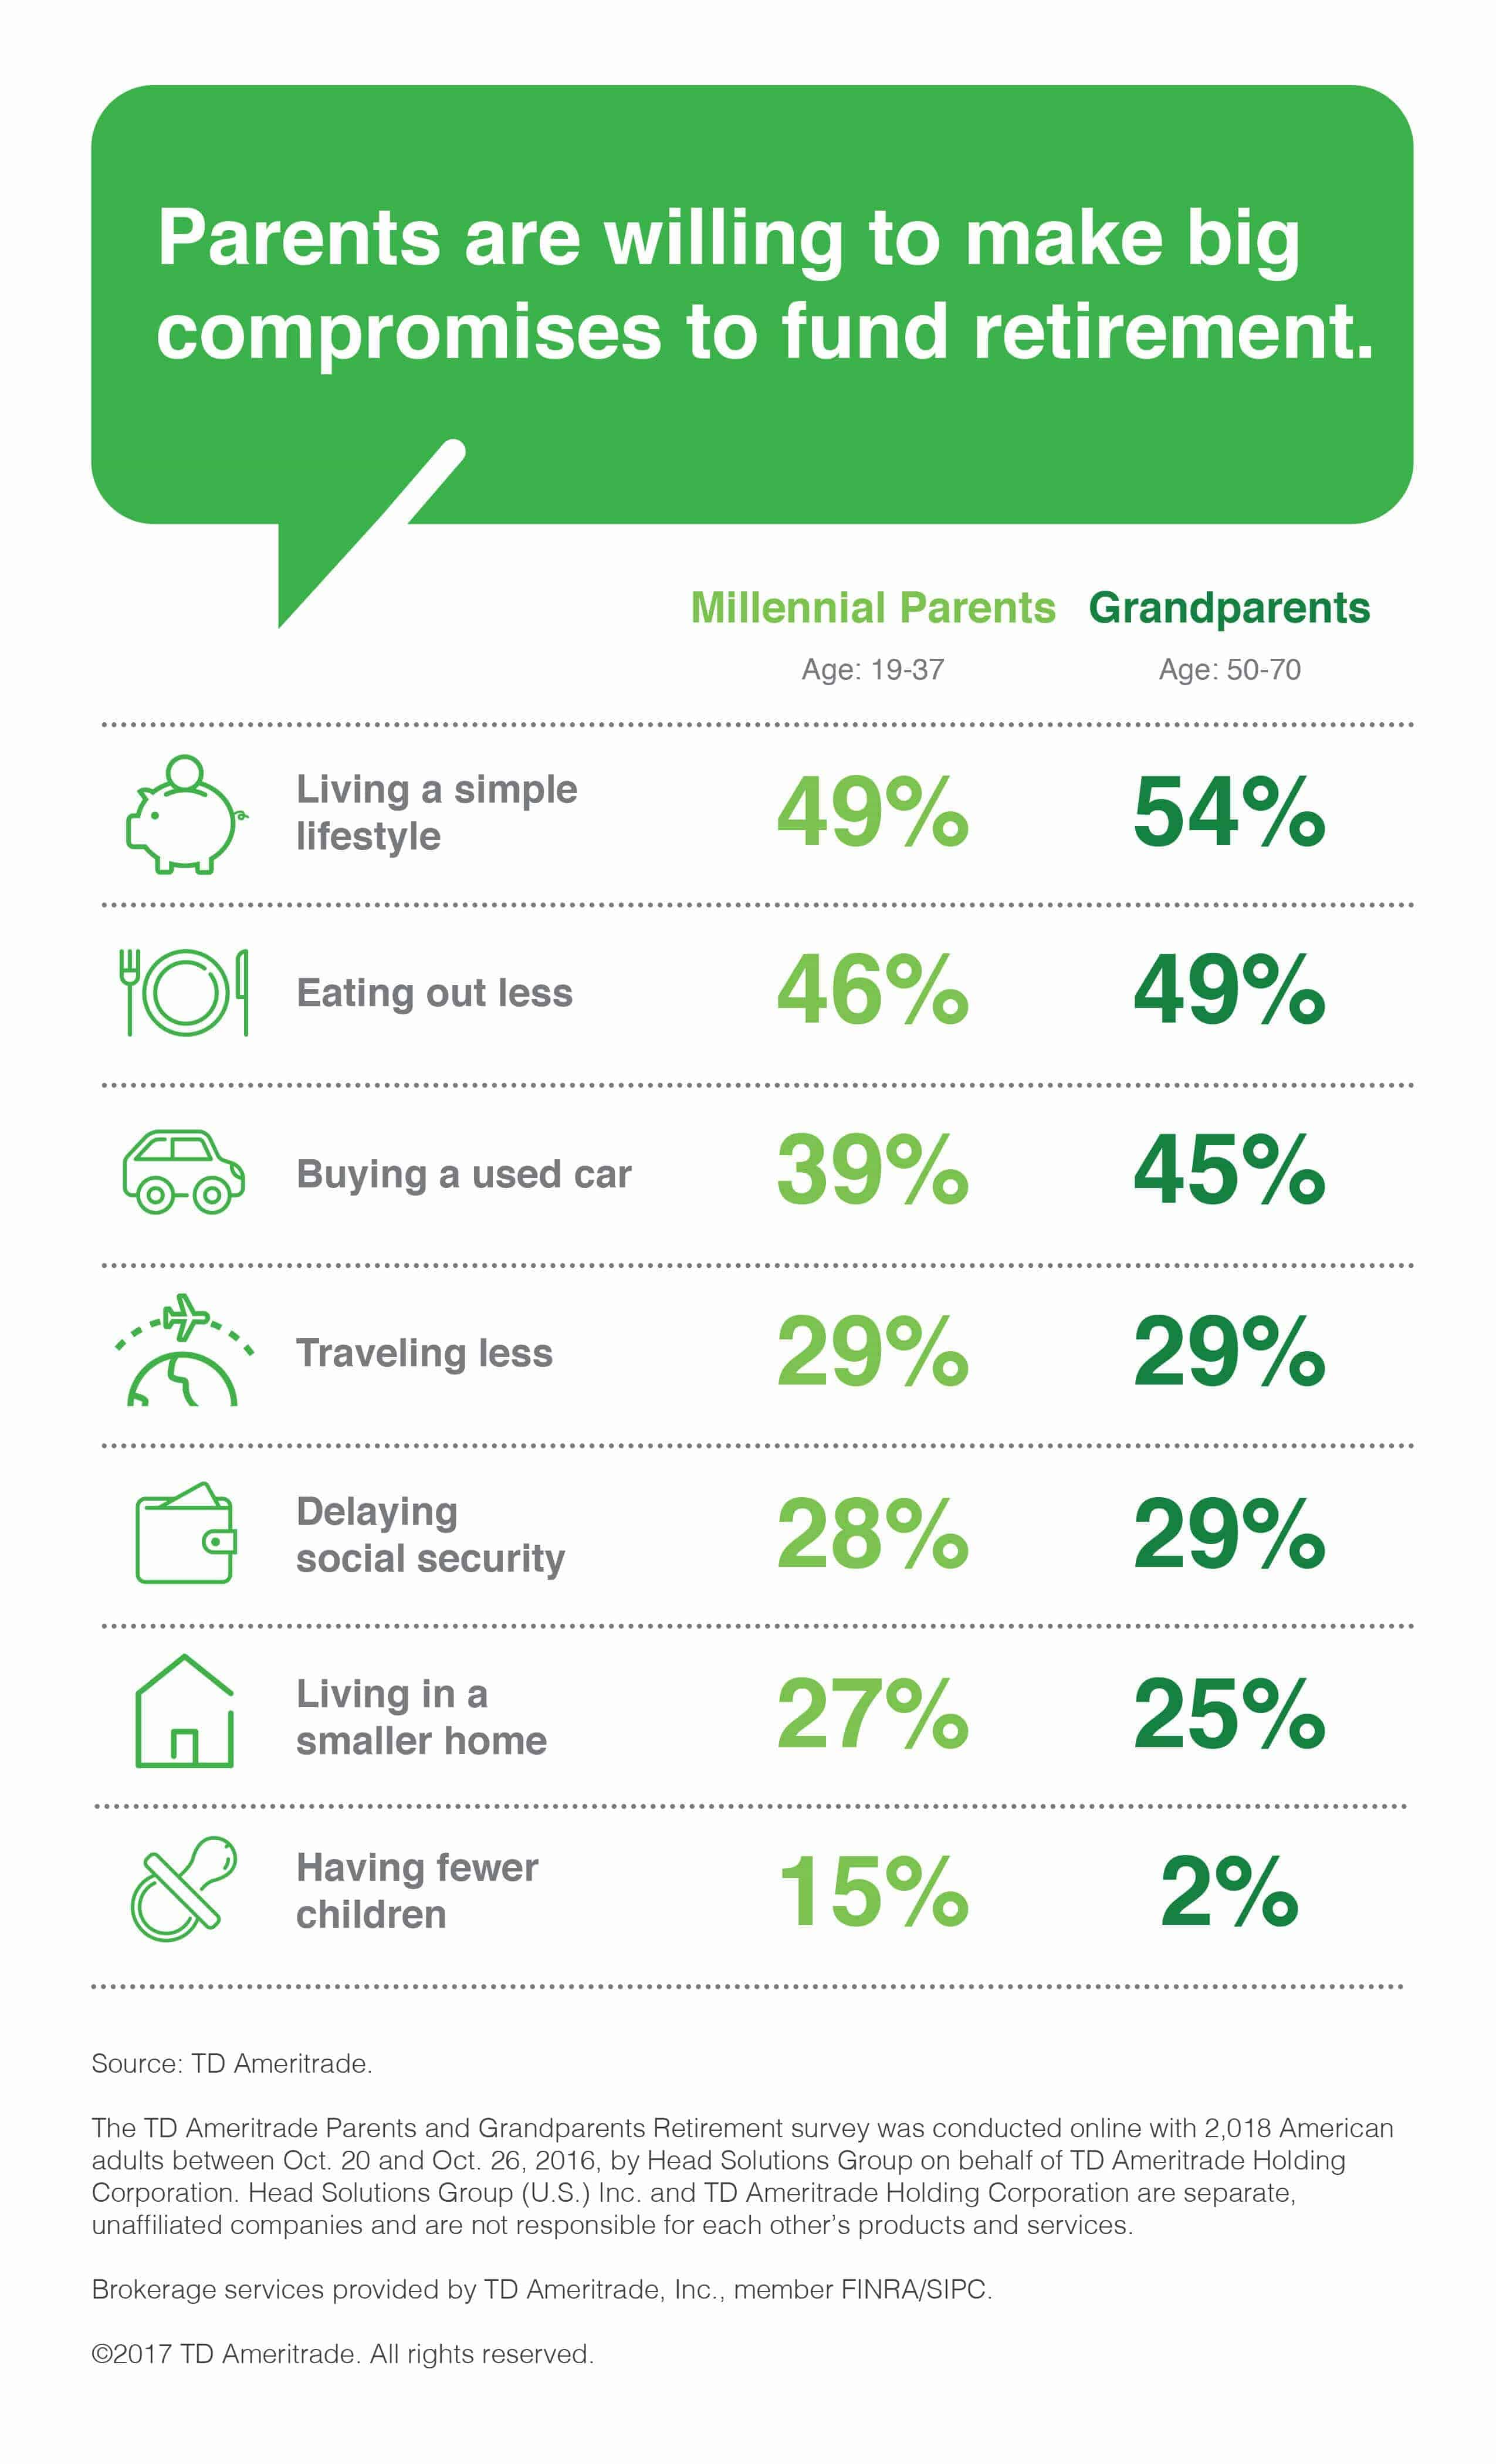 millennial parents downsize